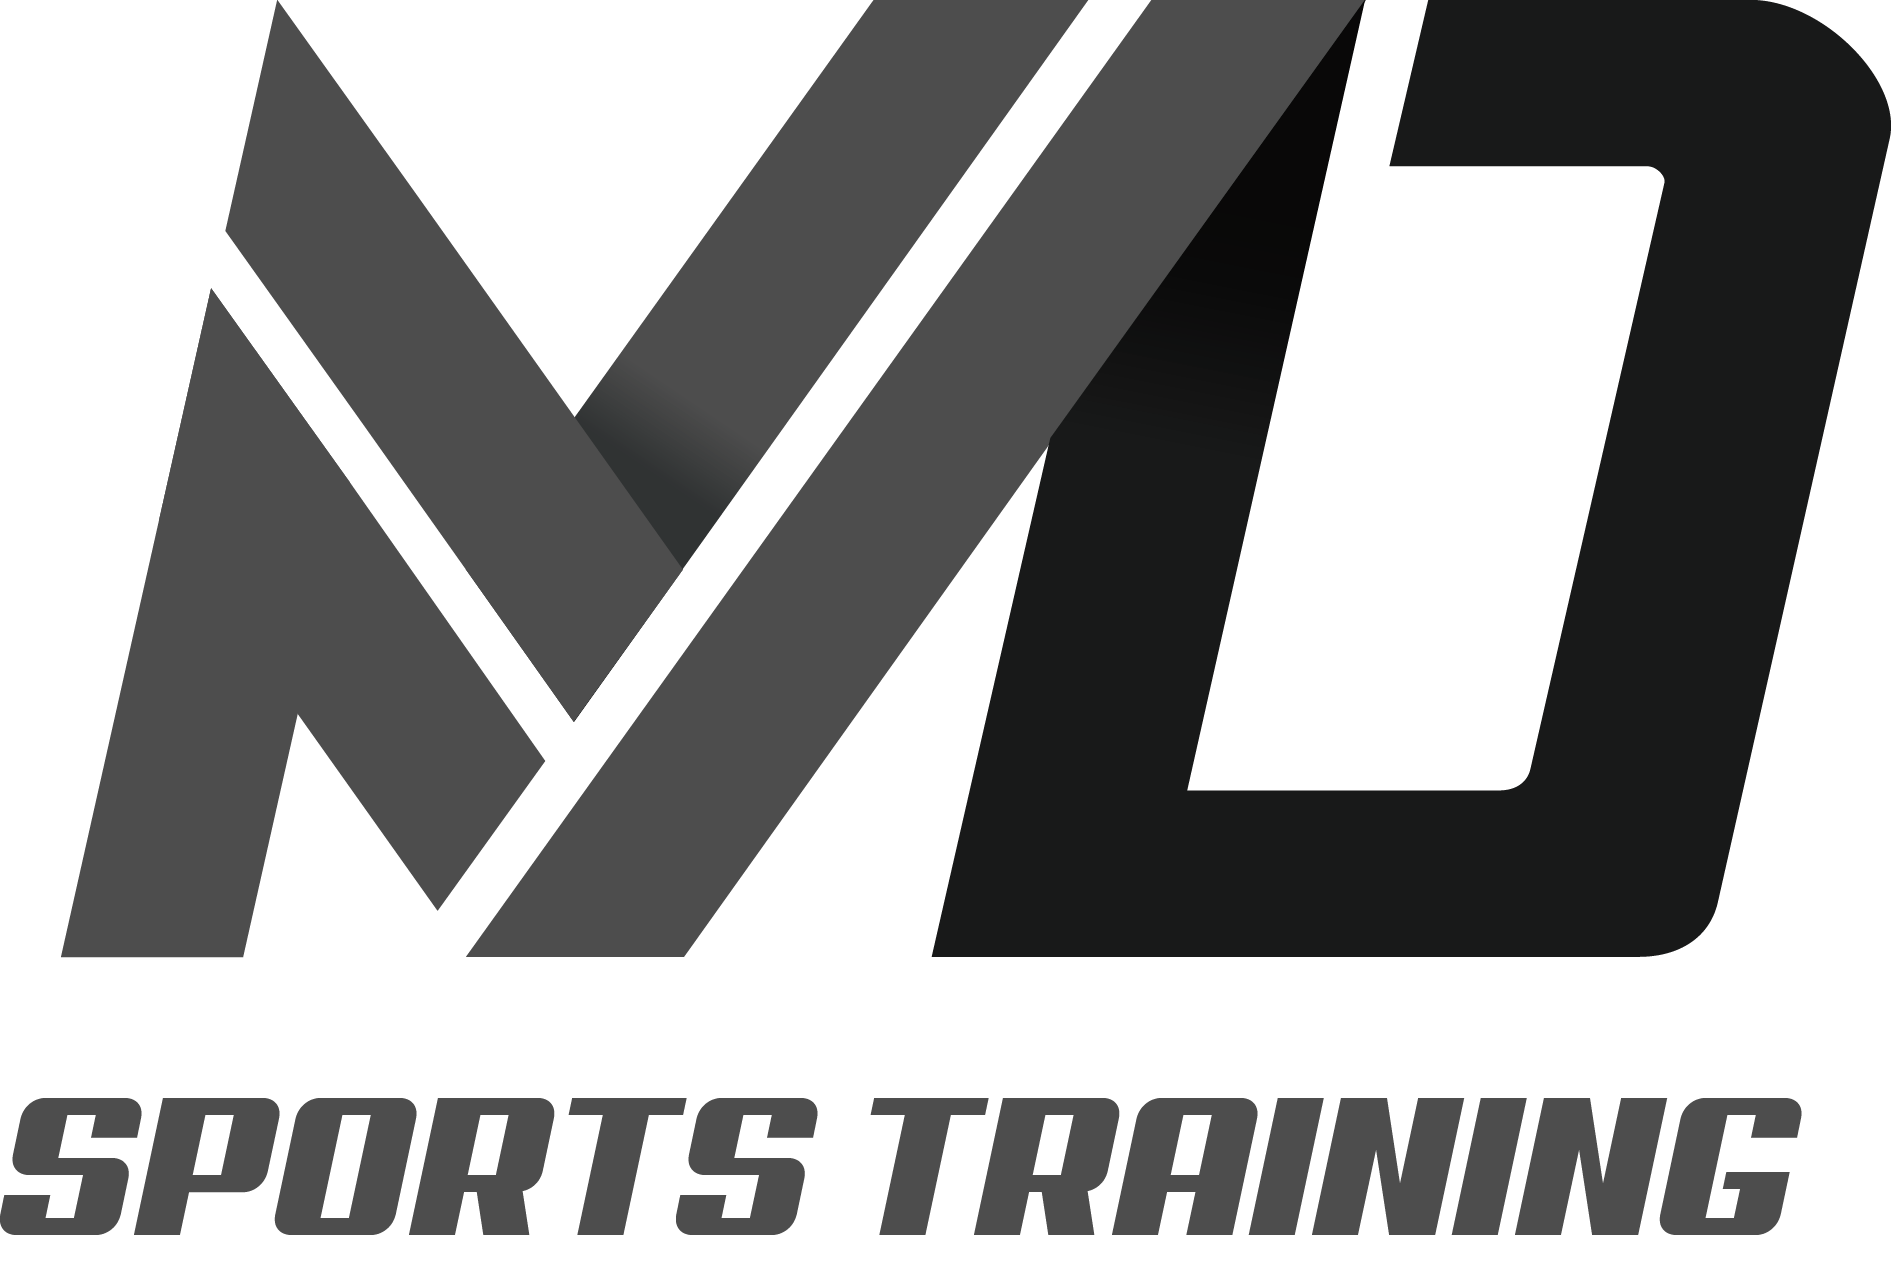 MARYLAND SPORT TRAINING 4.png